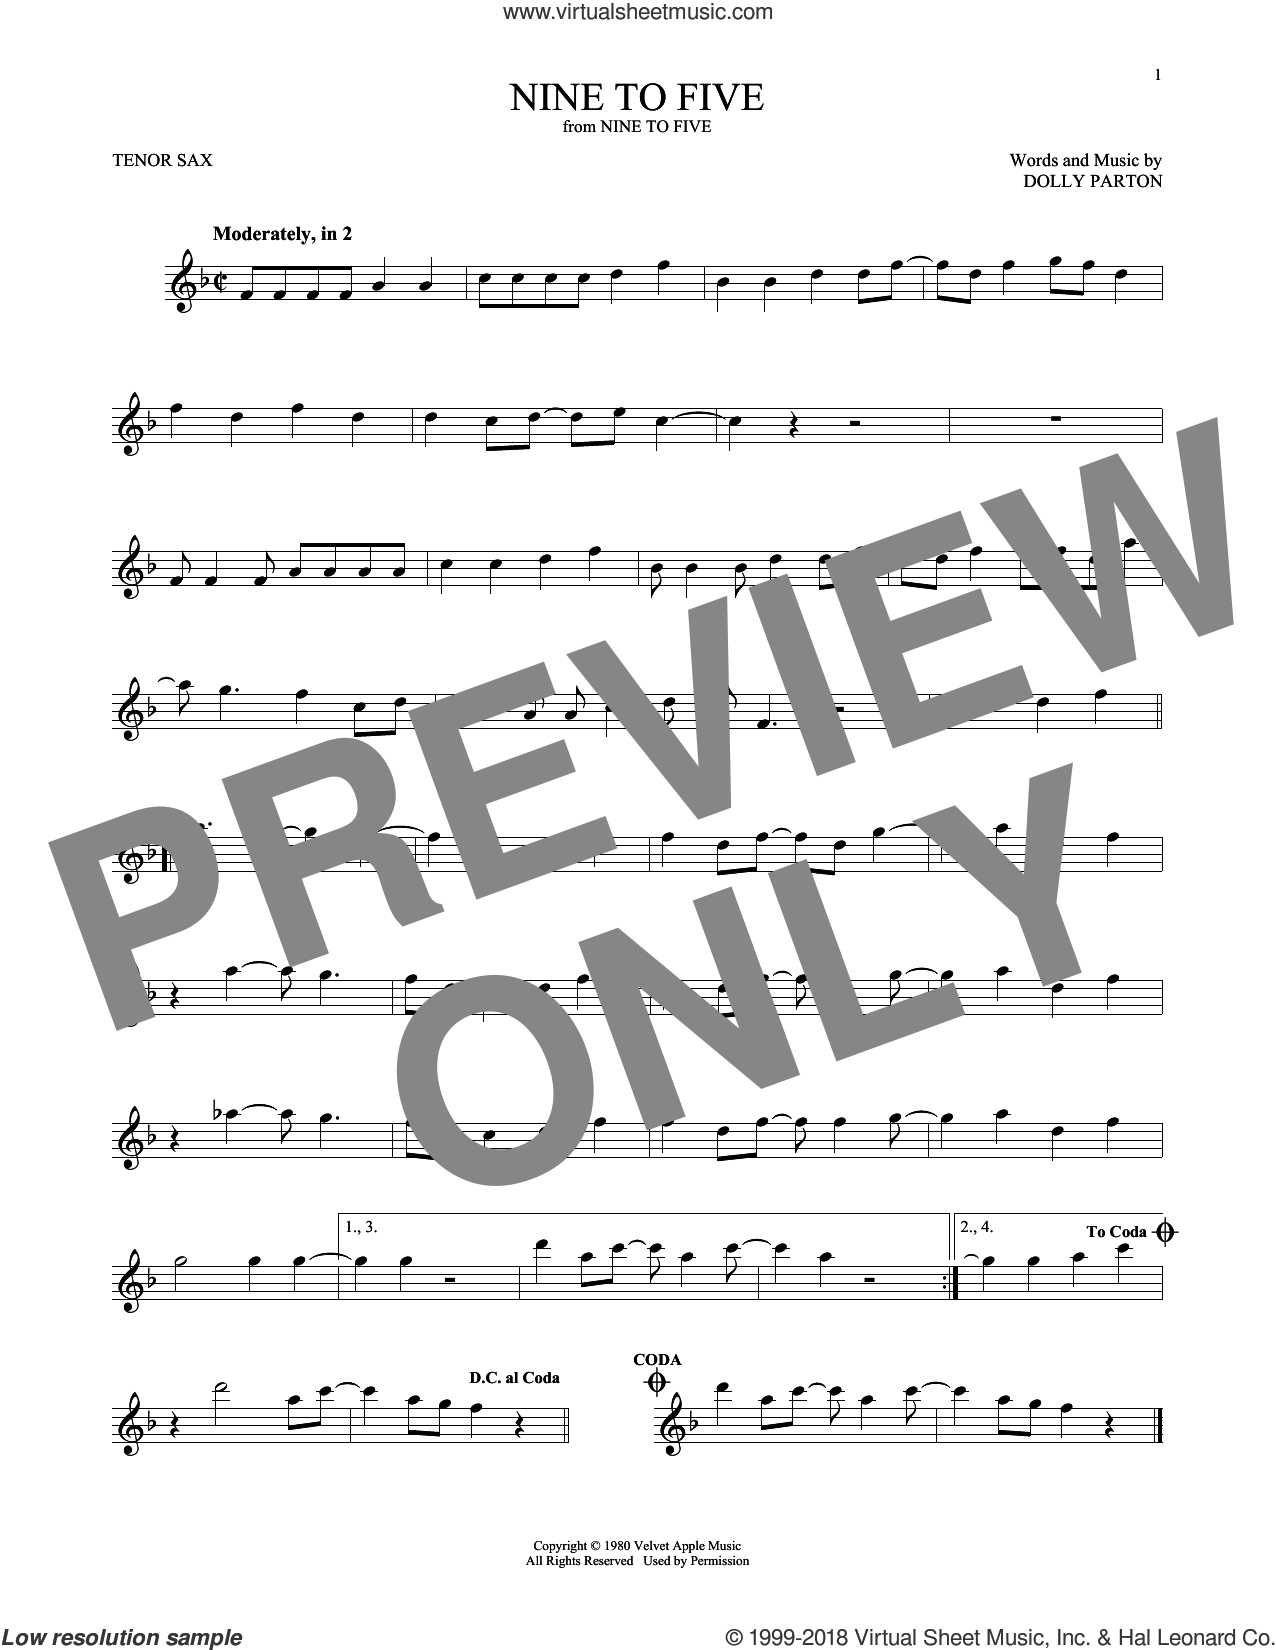 Nine To Five sheet music for tenor saxophone solo by Dolly Parton, intermediate skill level